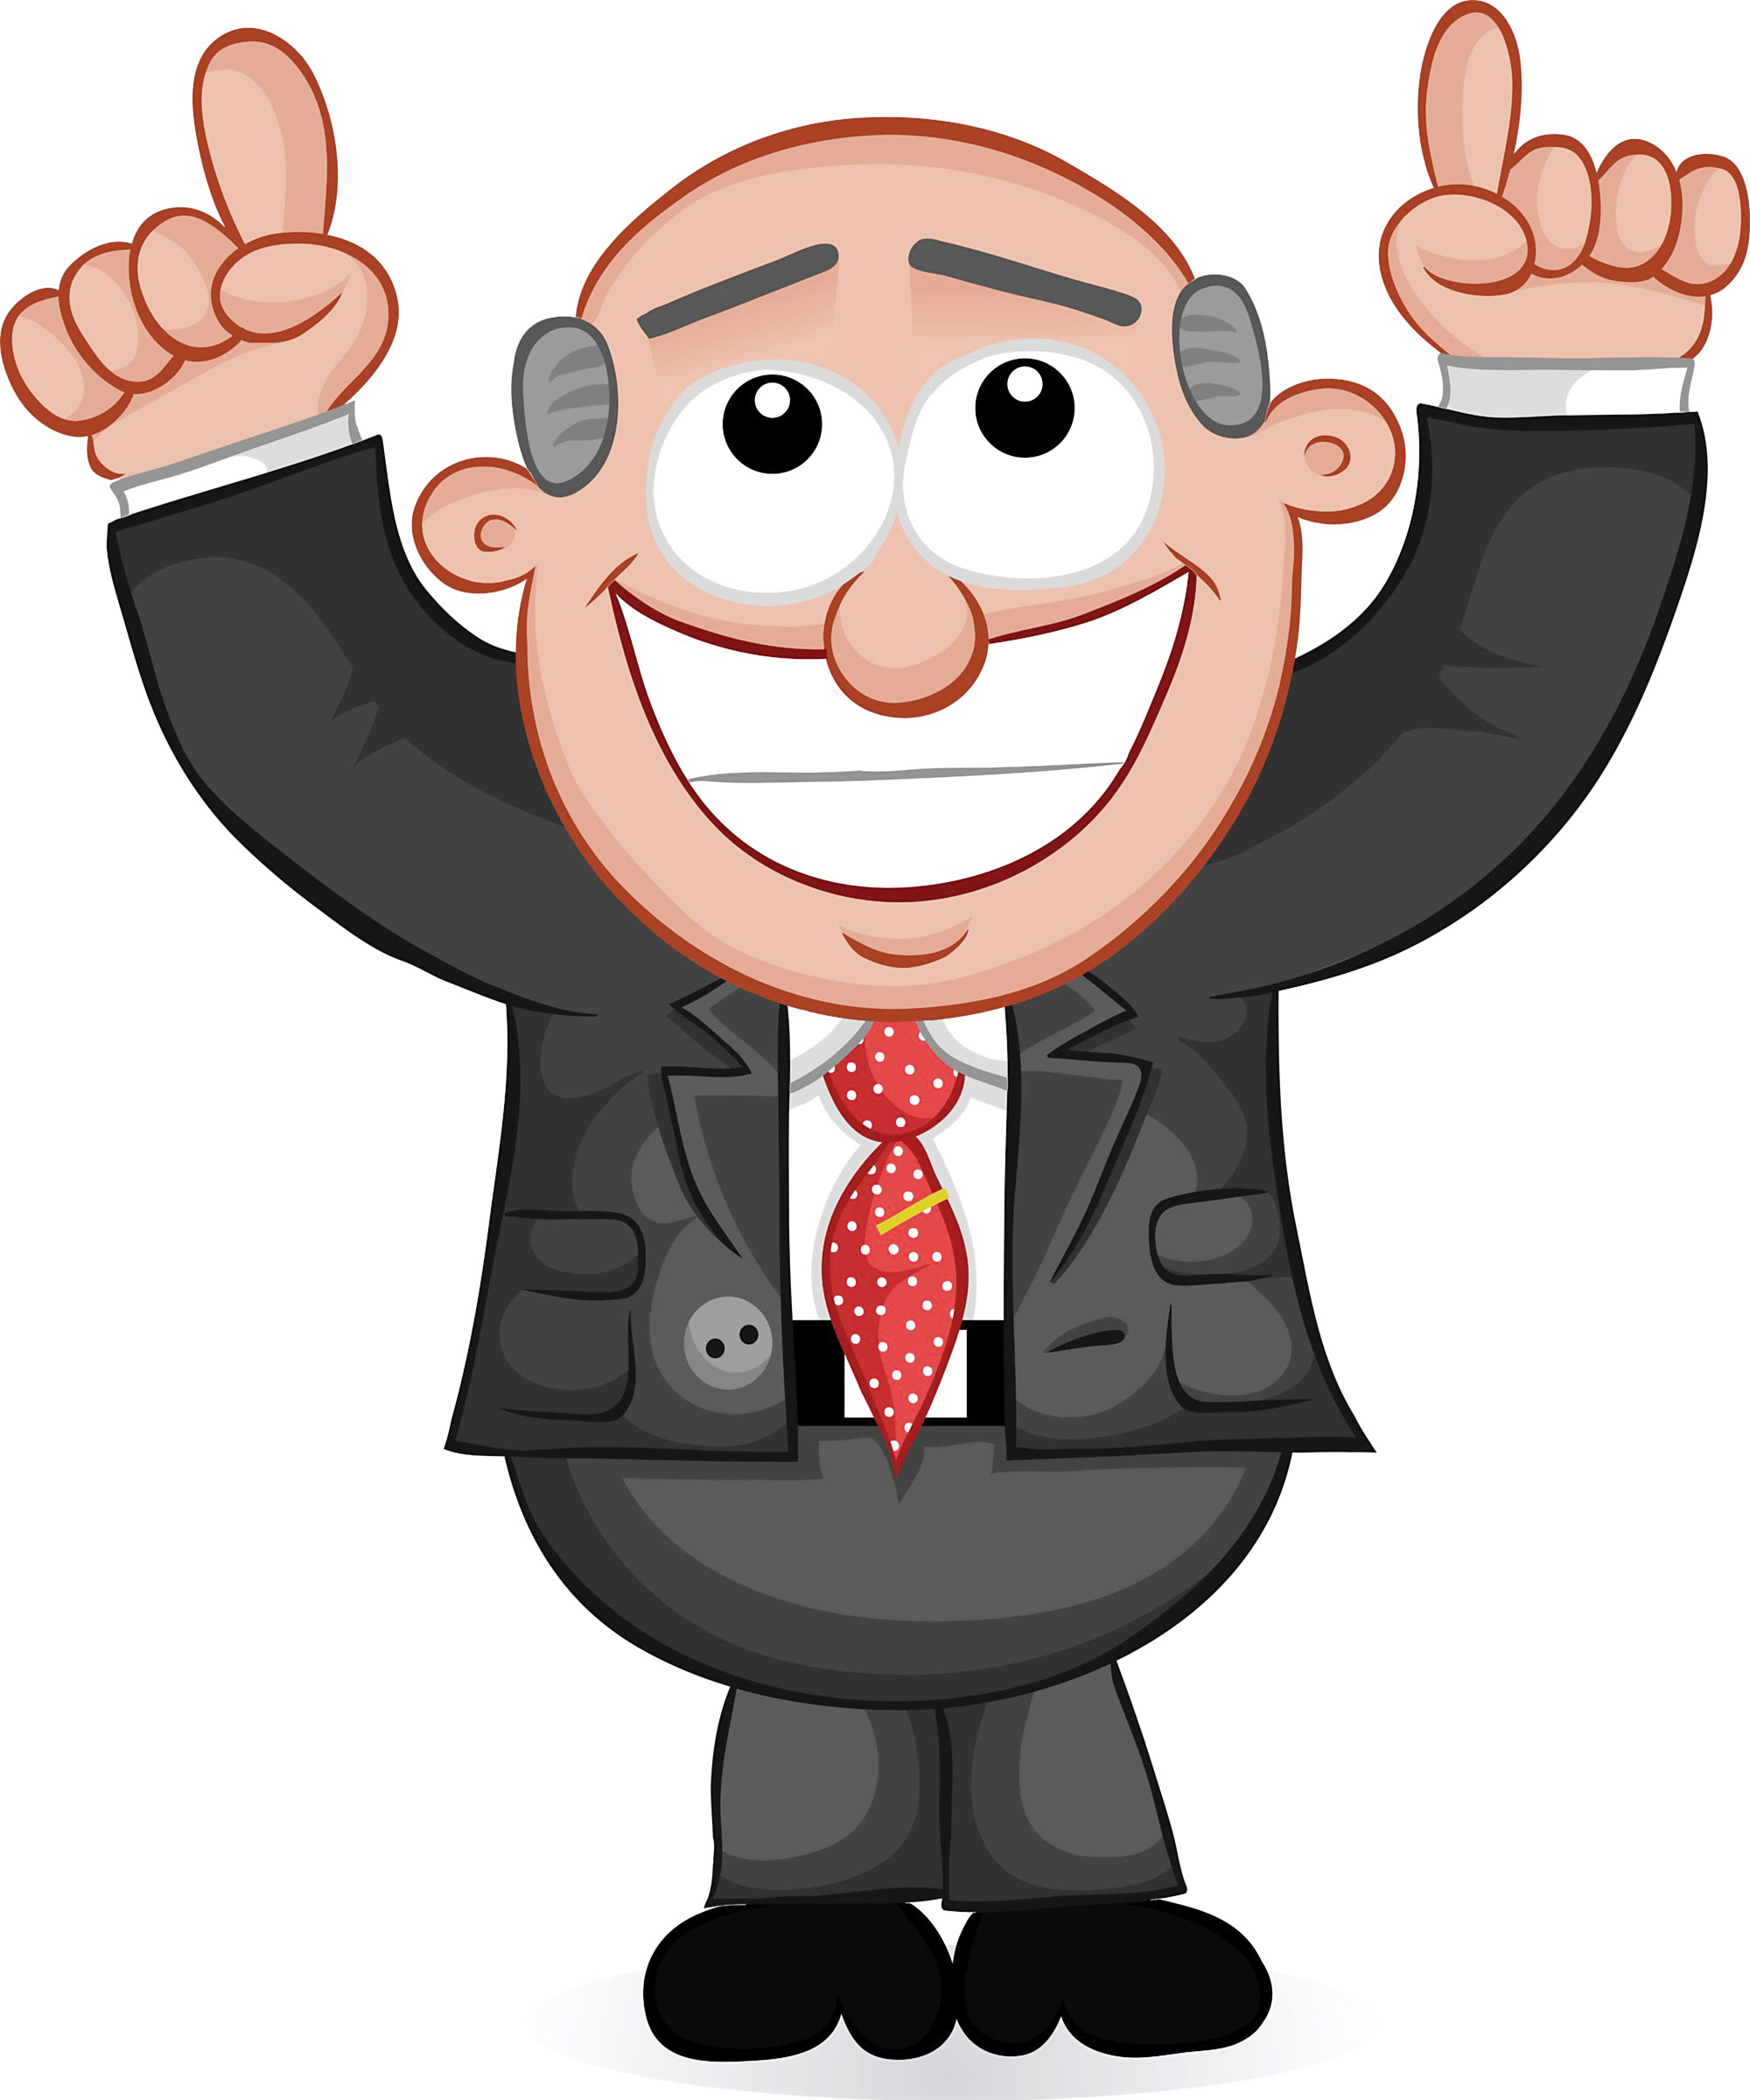 Pastor clipart aggressive person. Free download best on